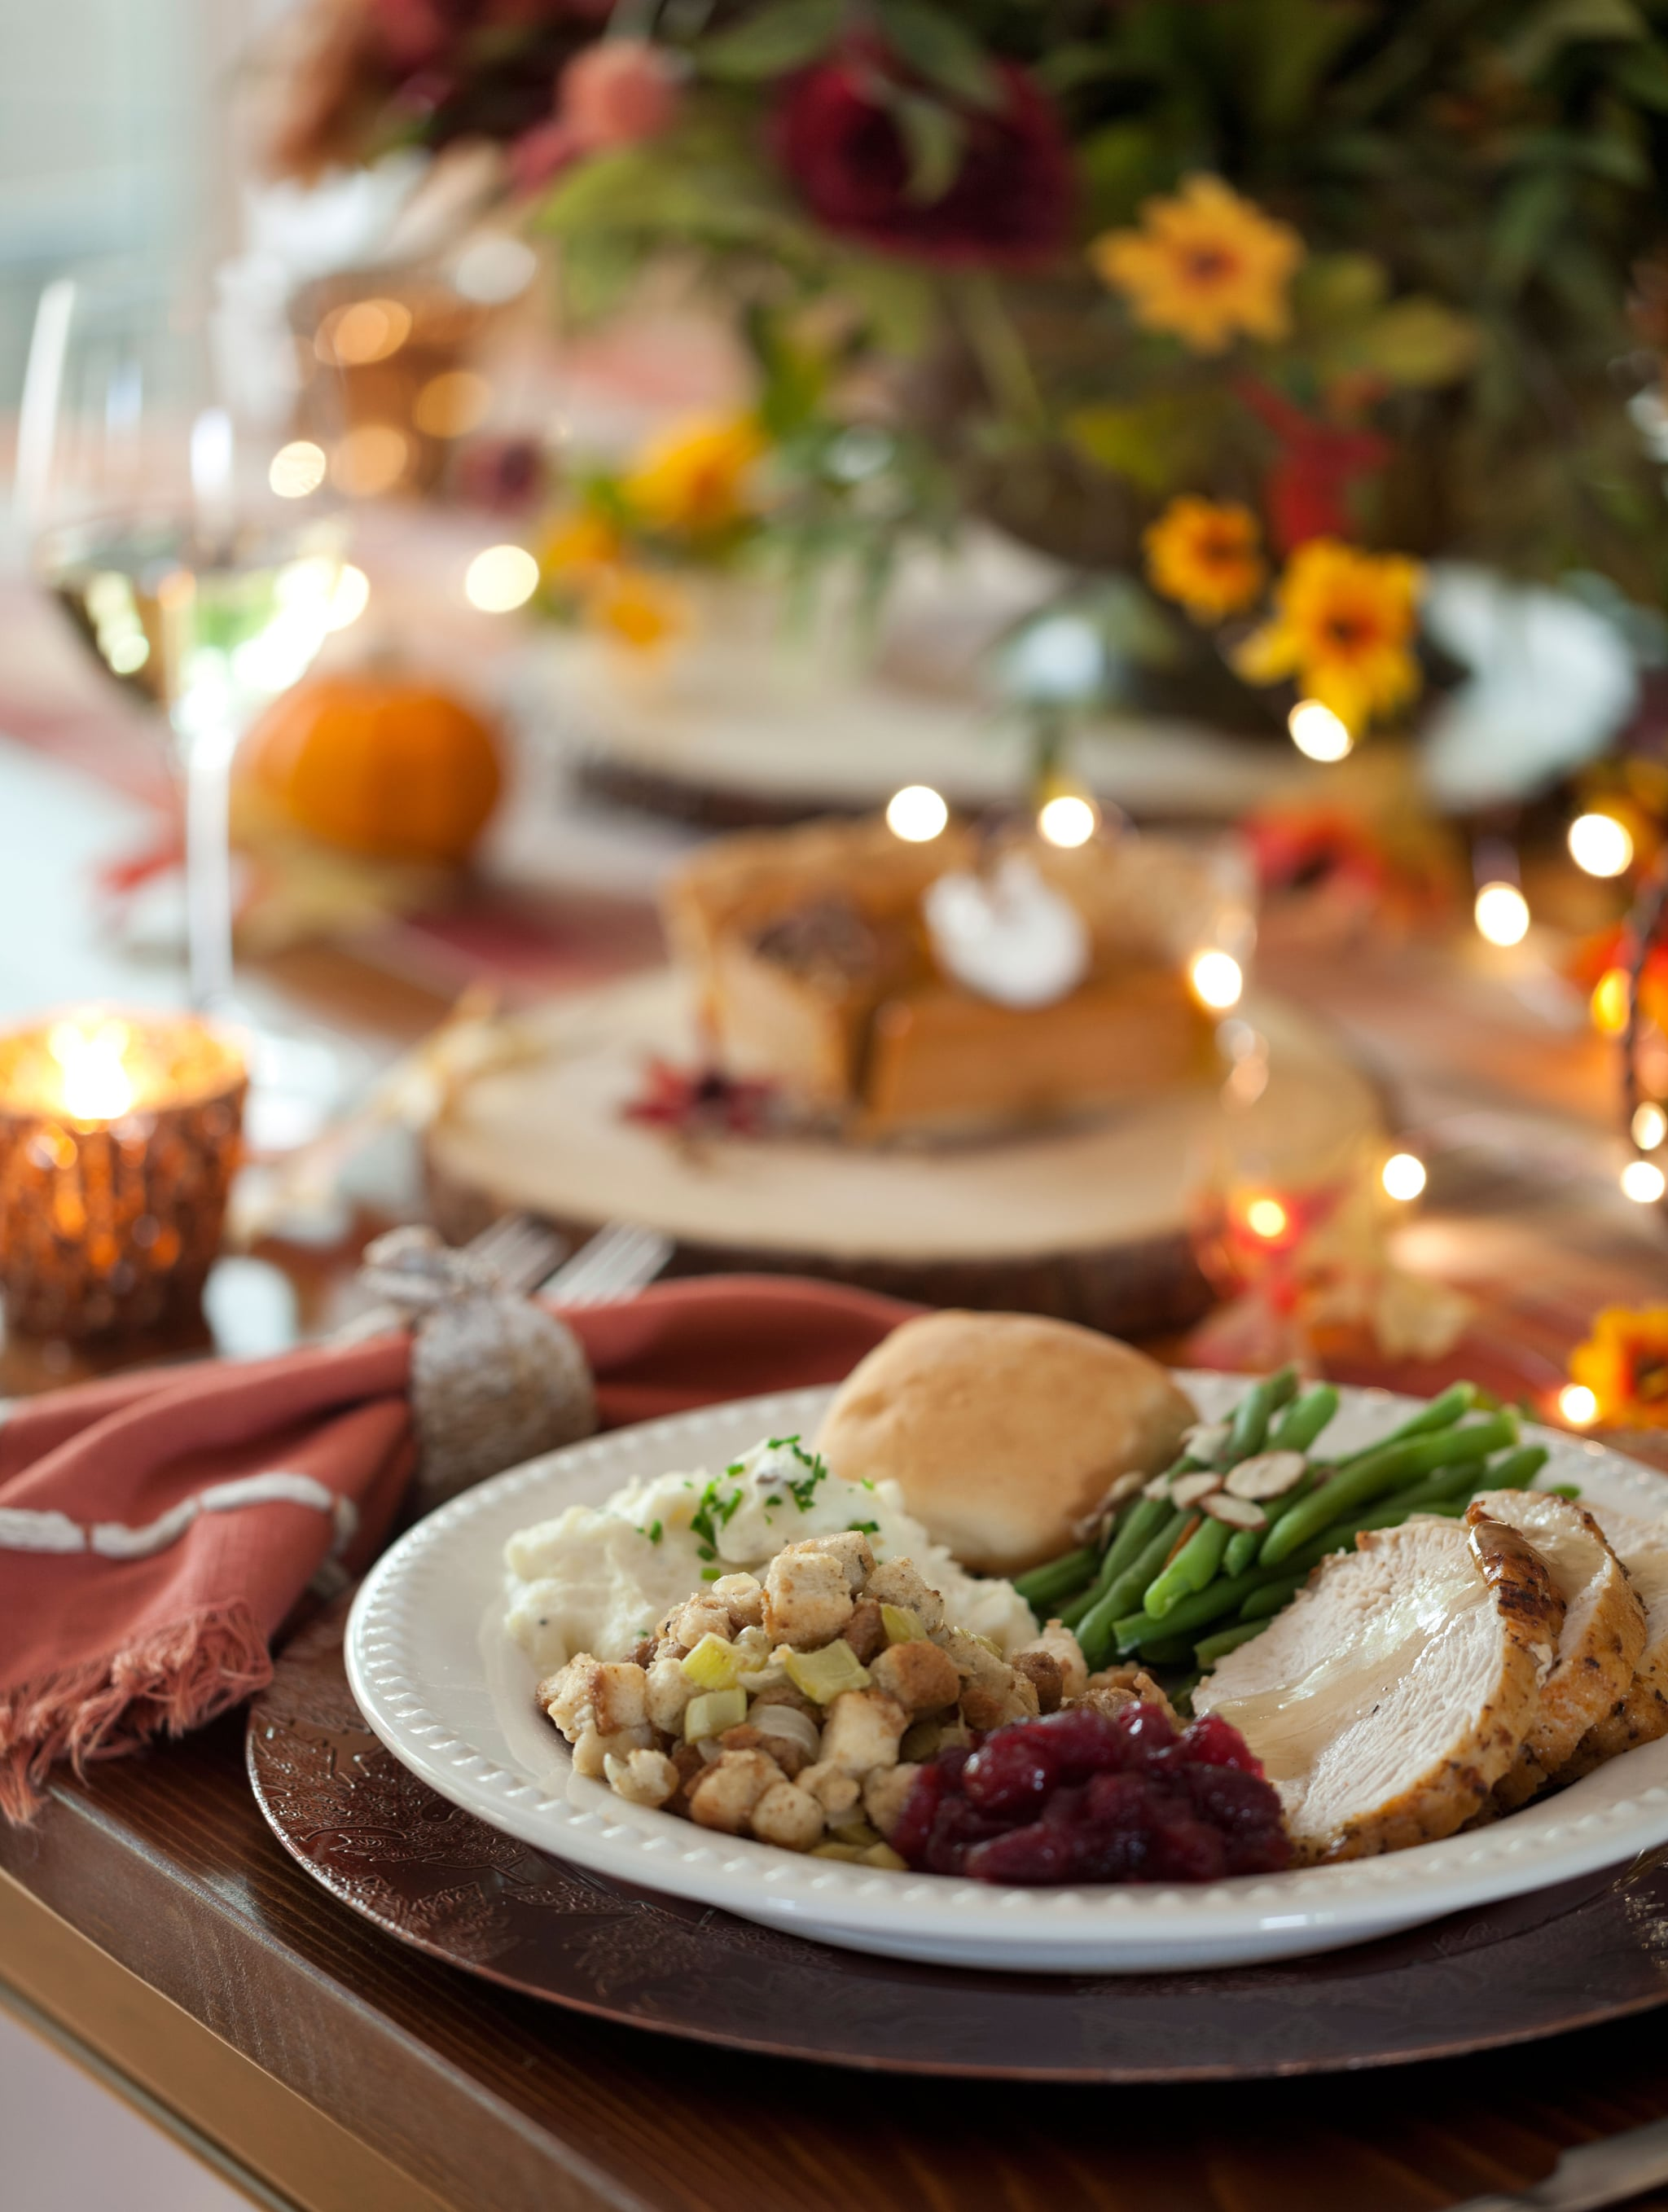 A Dietitian Shares a Delicious Tip to Prevent Binge Eating and Feeling Like Crap on Thanksgiving